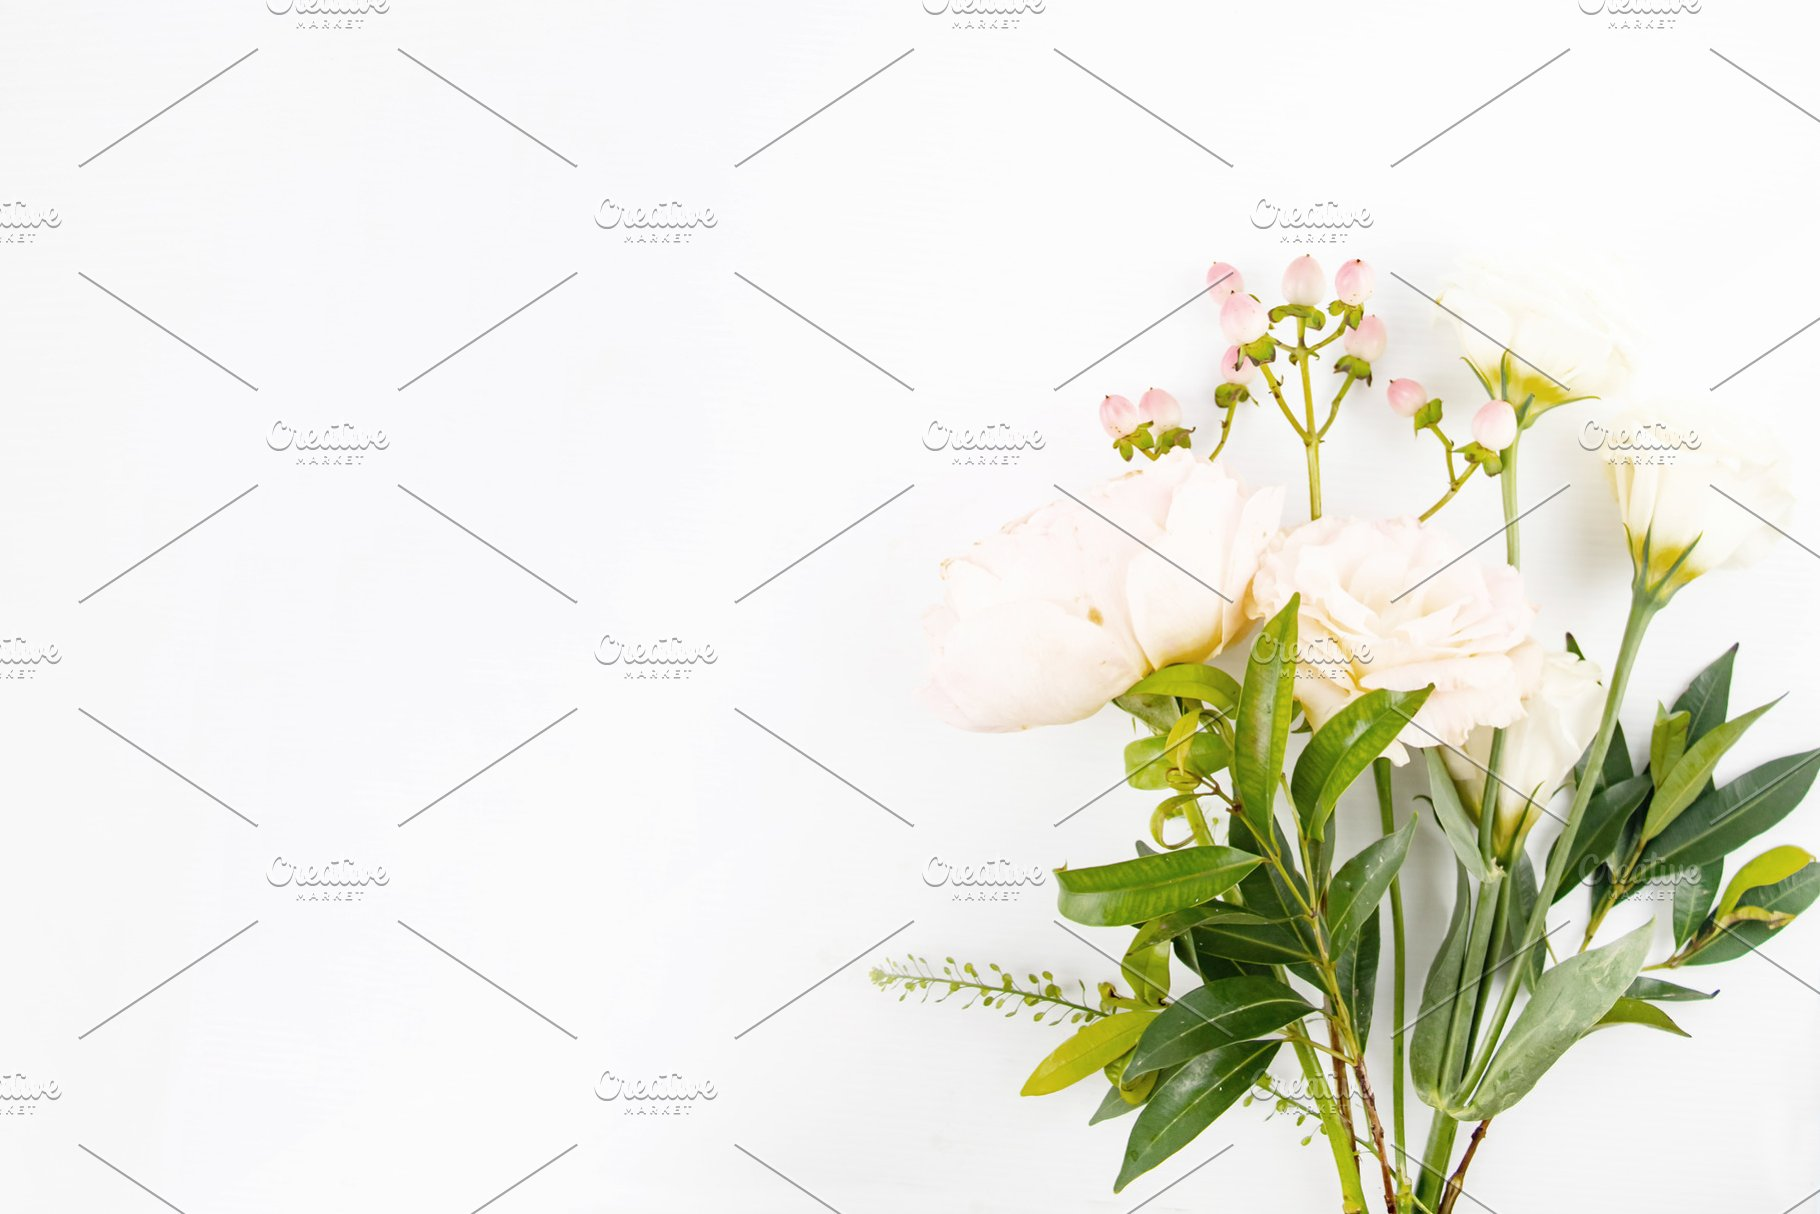 Rustic Floral On White Background High Quality Arts